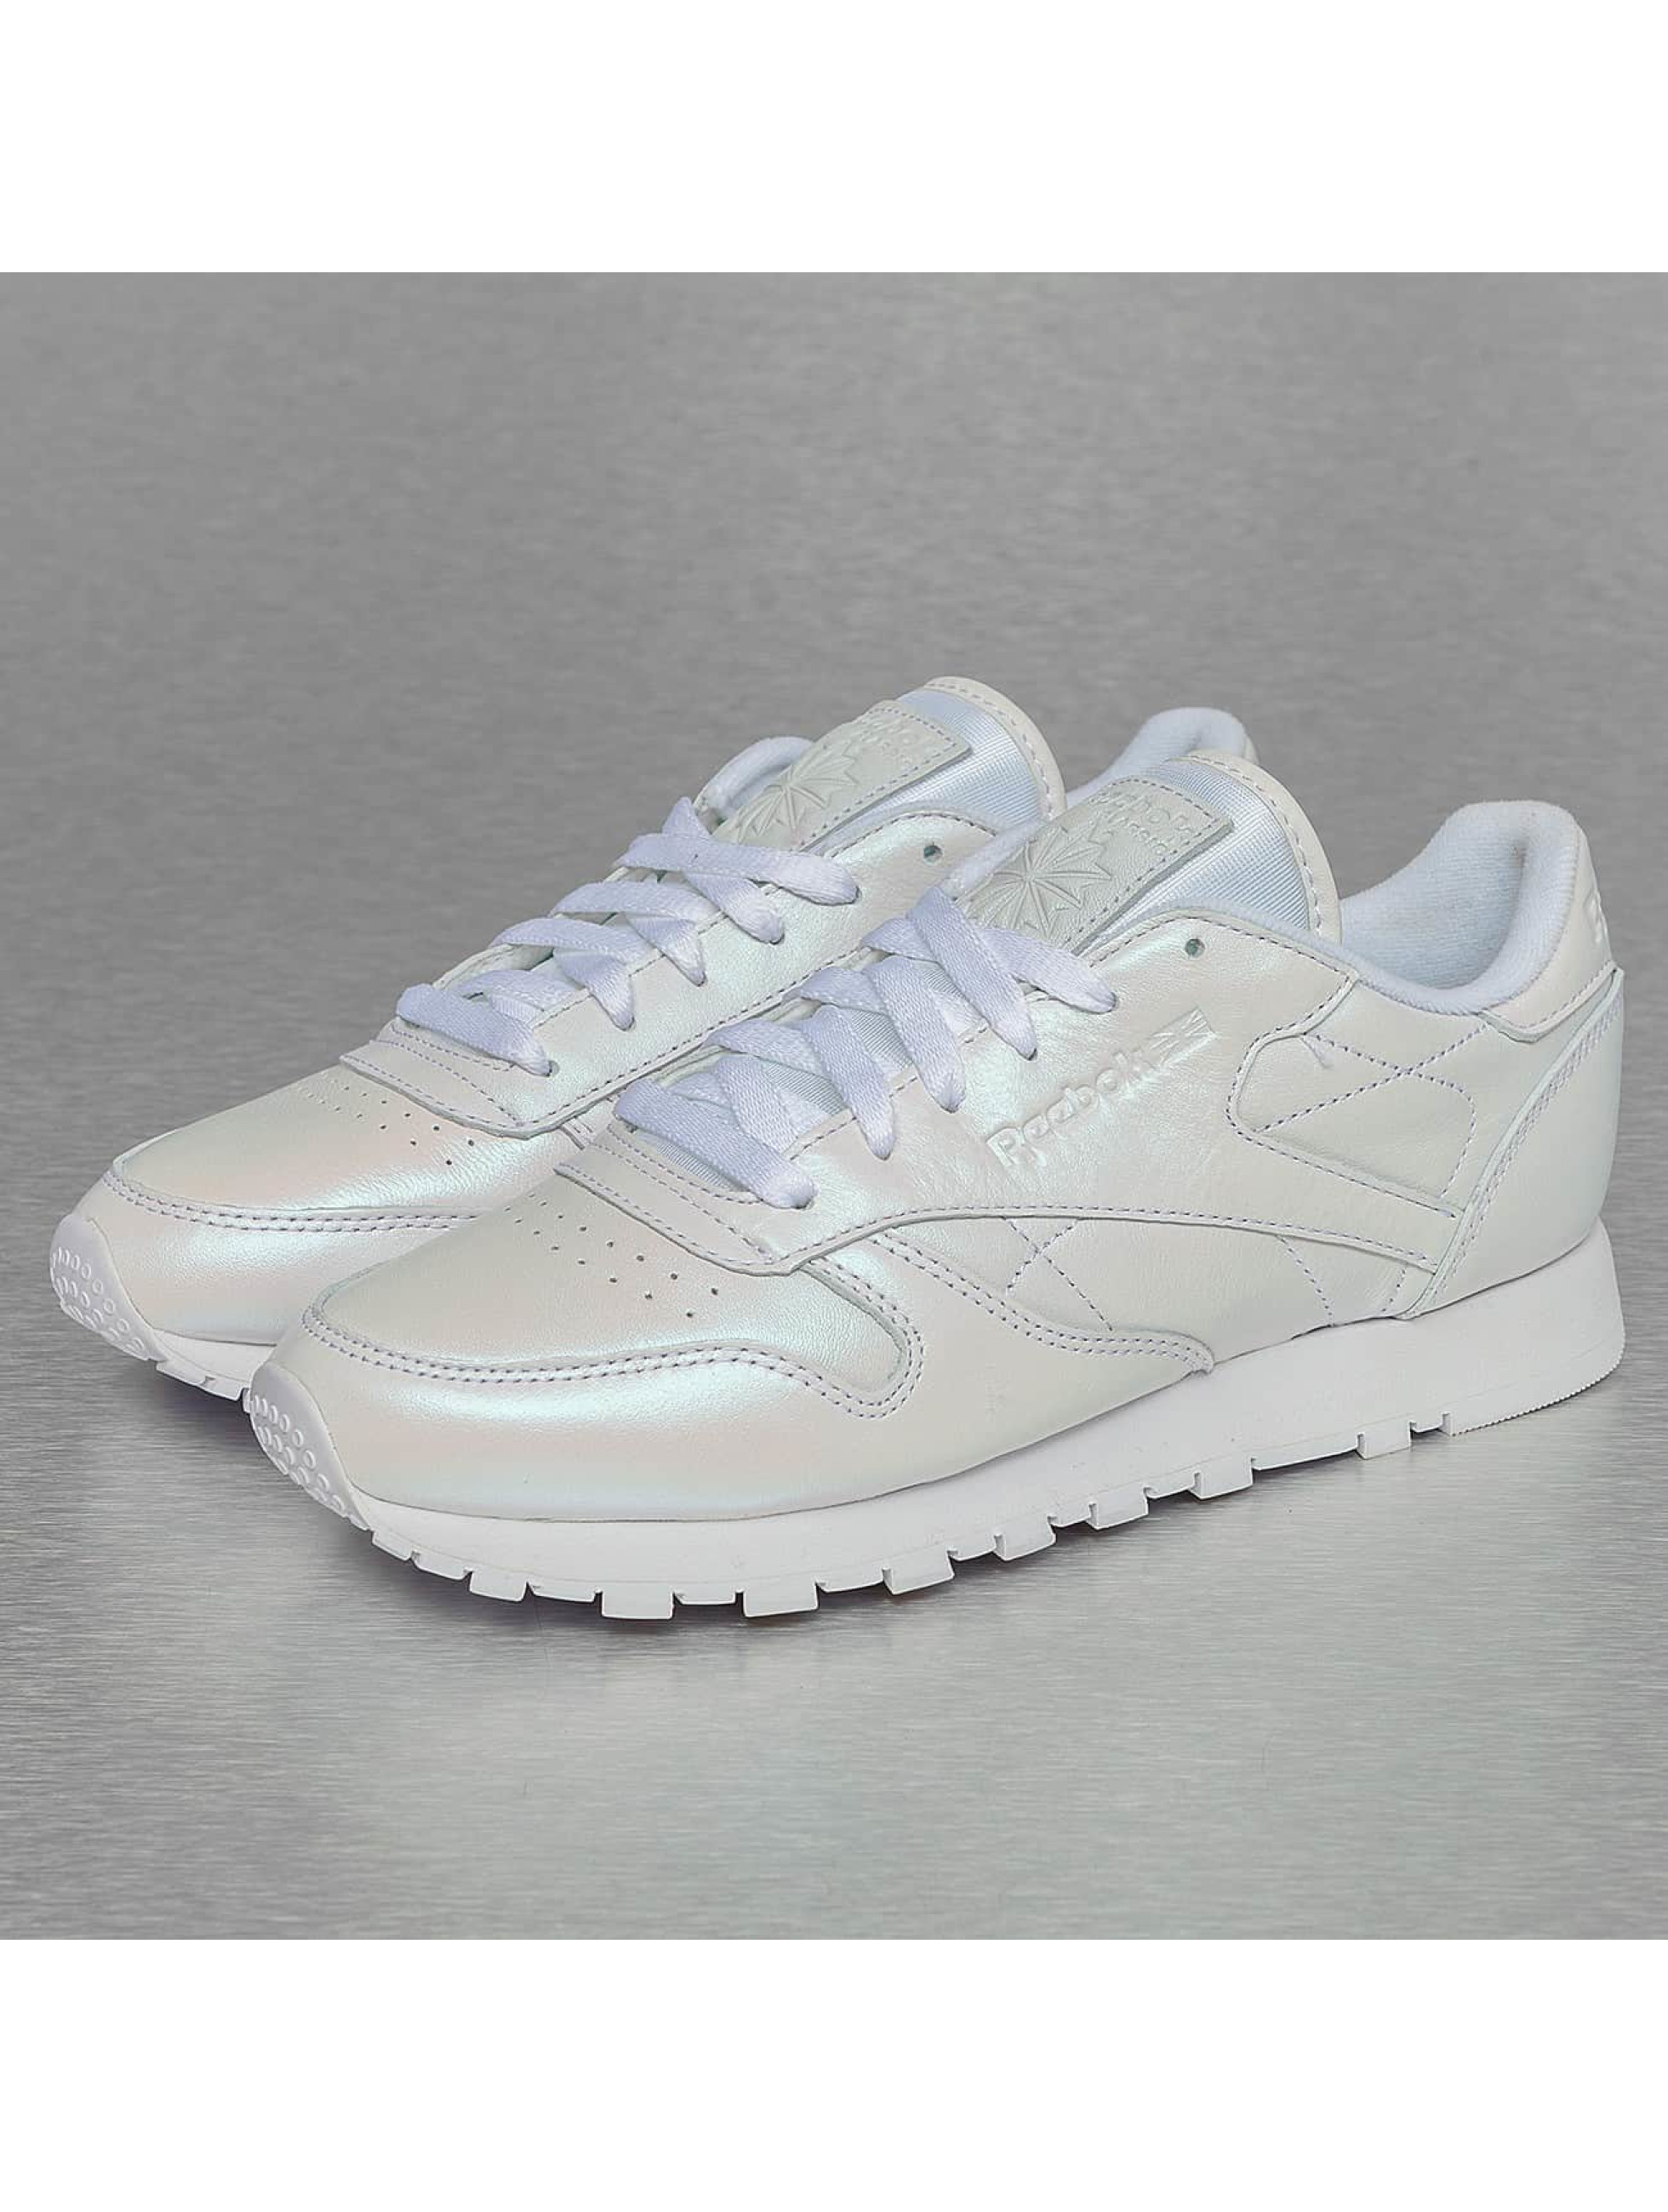 Sneaker Leather Pearlized in weiß